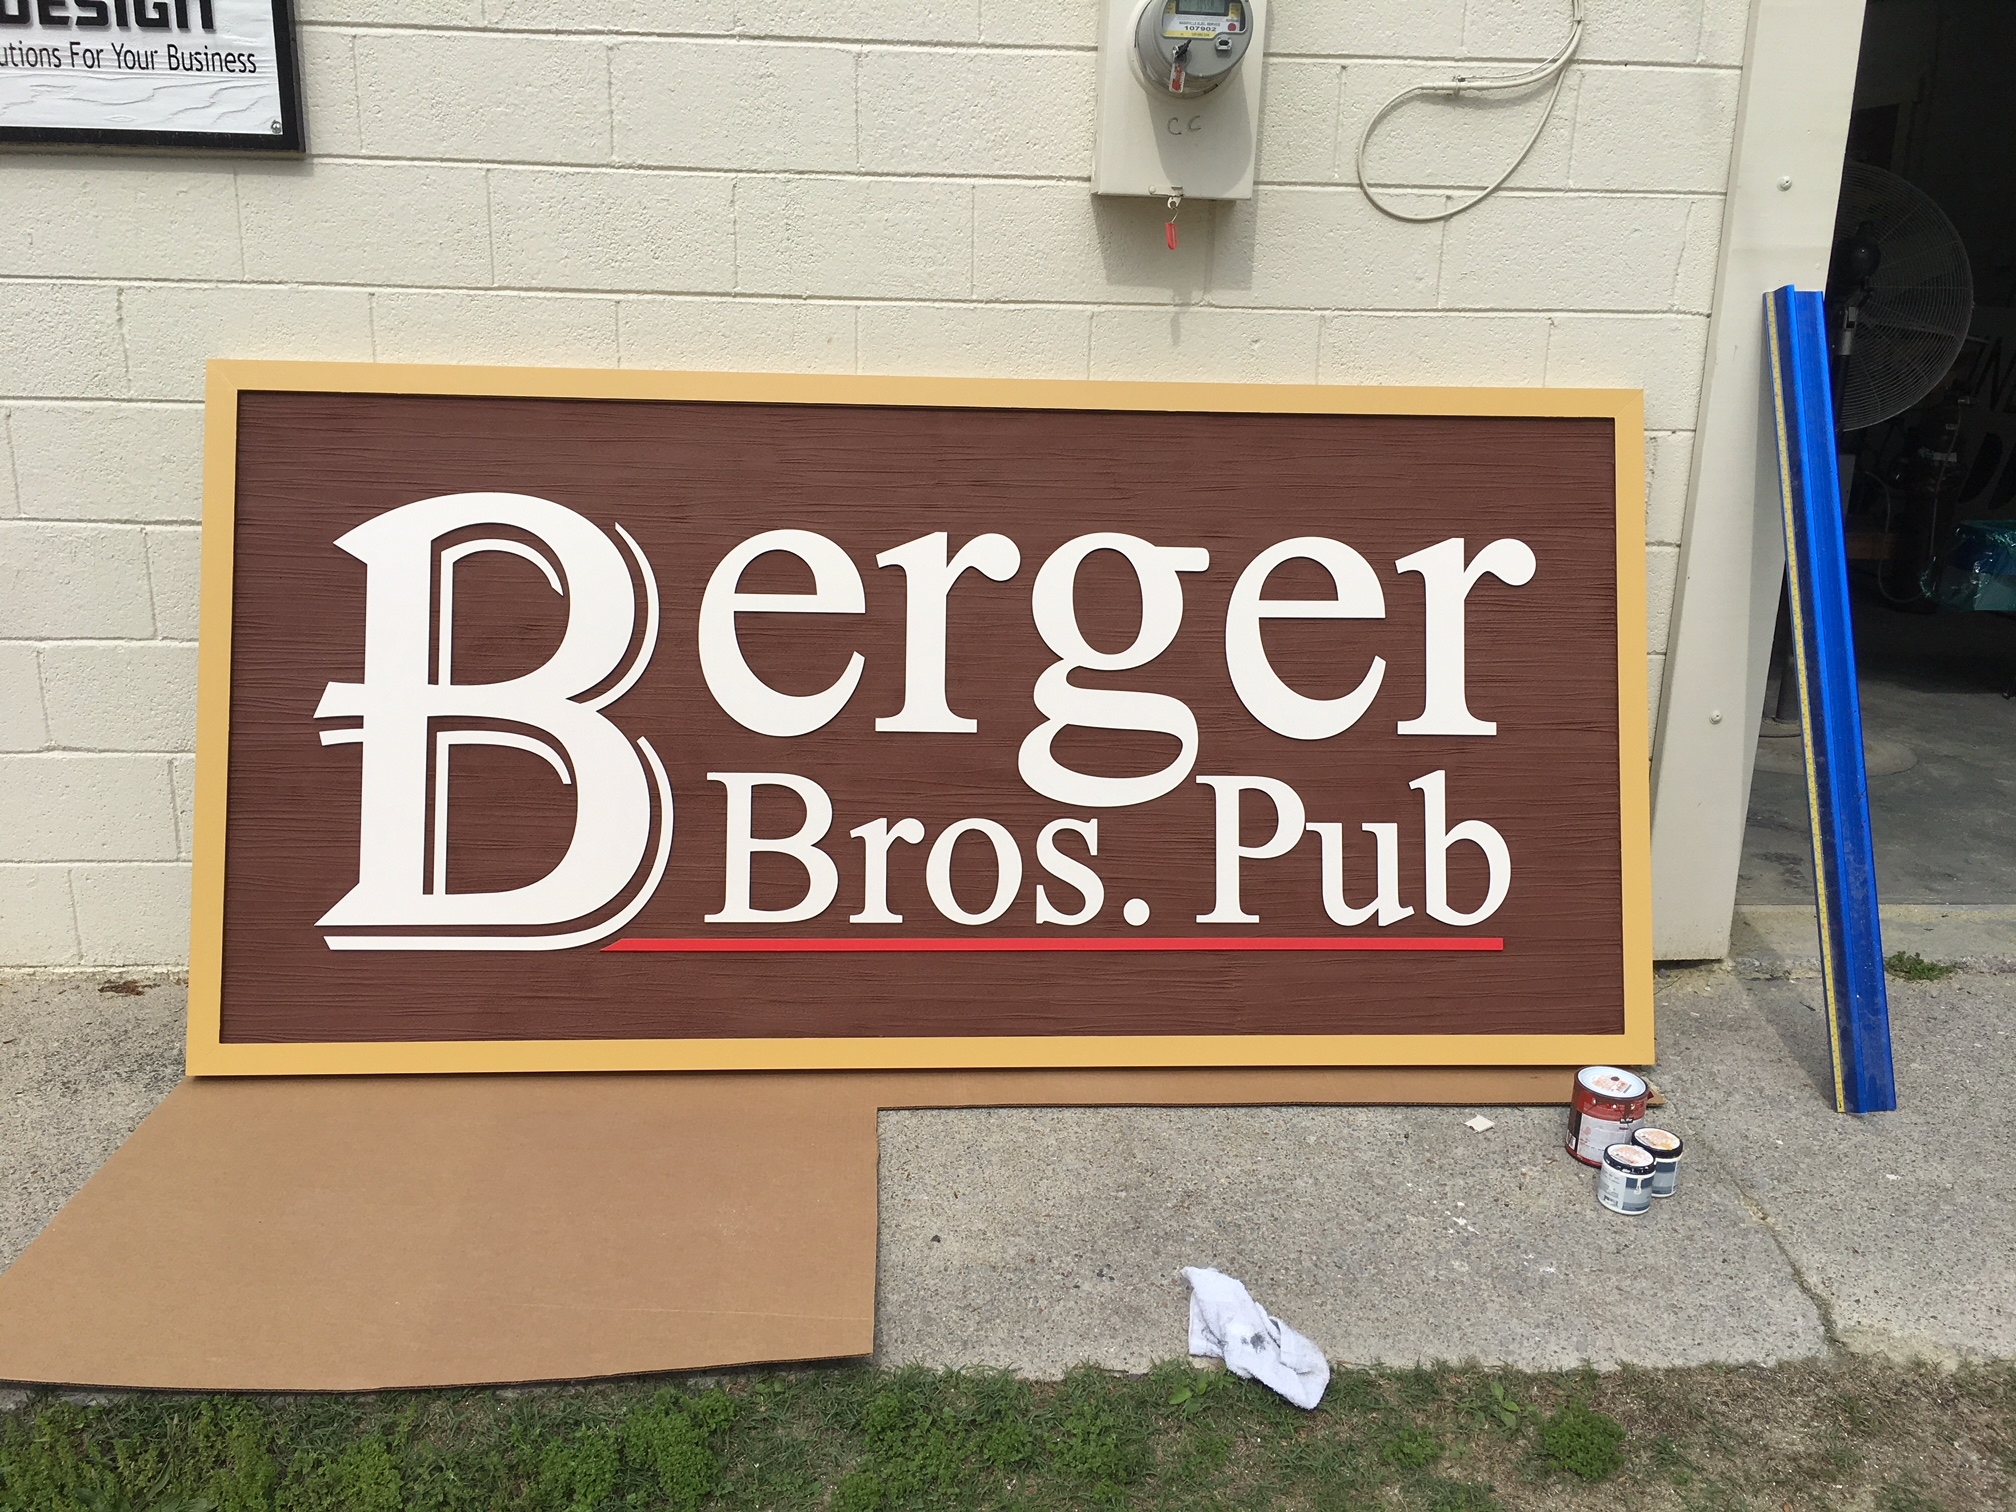 Berger Bros. Pub